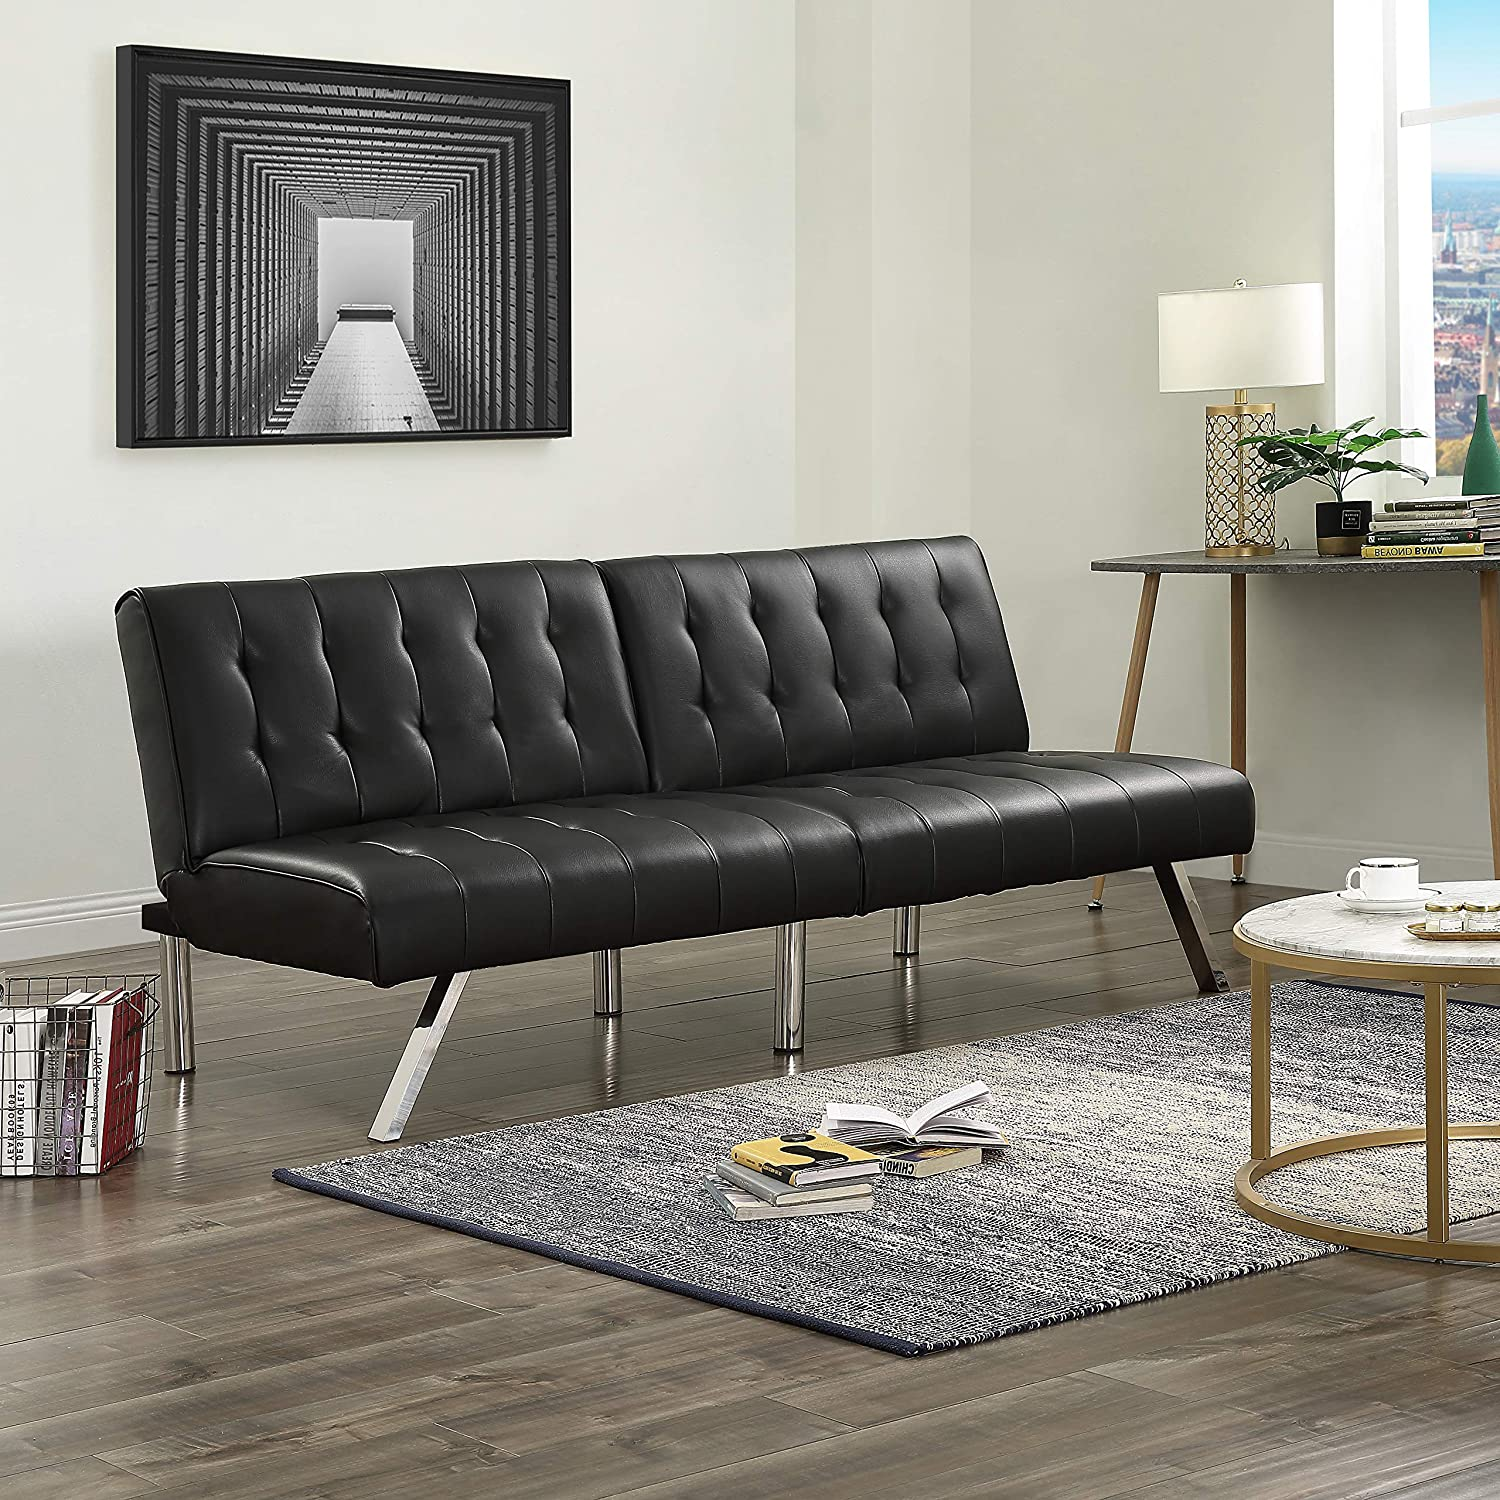 Black Faux Leather One Size, Modern Couch with Chrome Legs Quickly Converts into a Bed MHG Futon Sofa